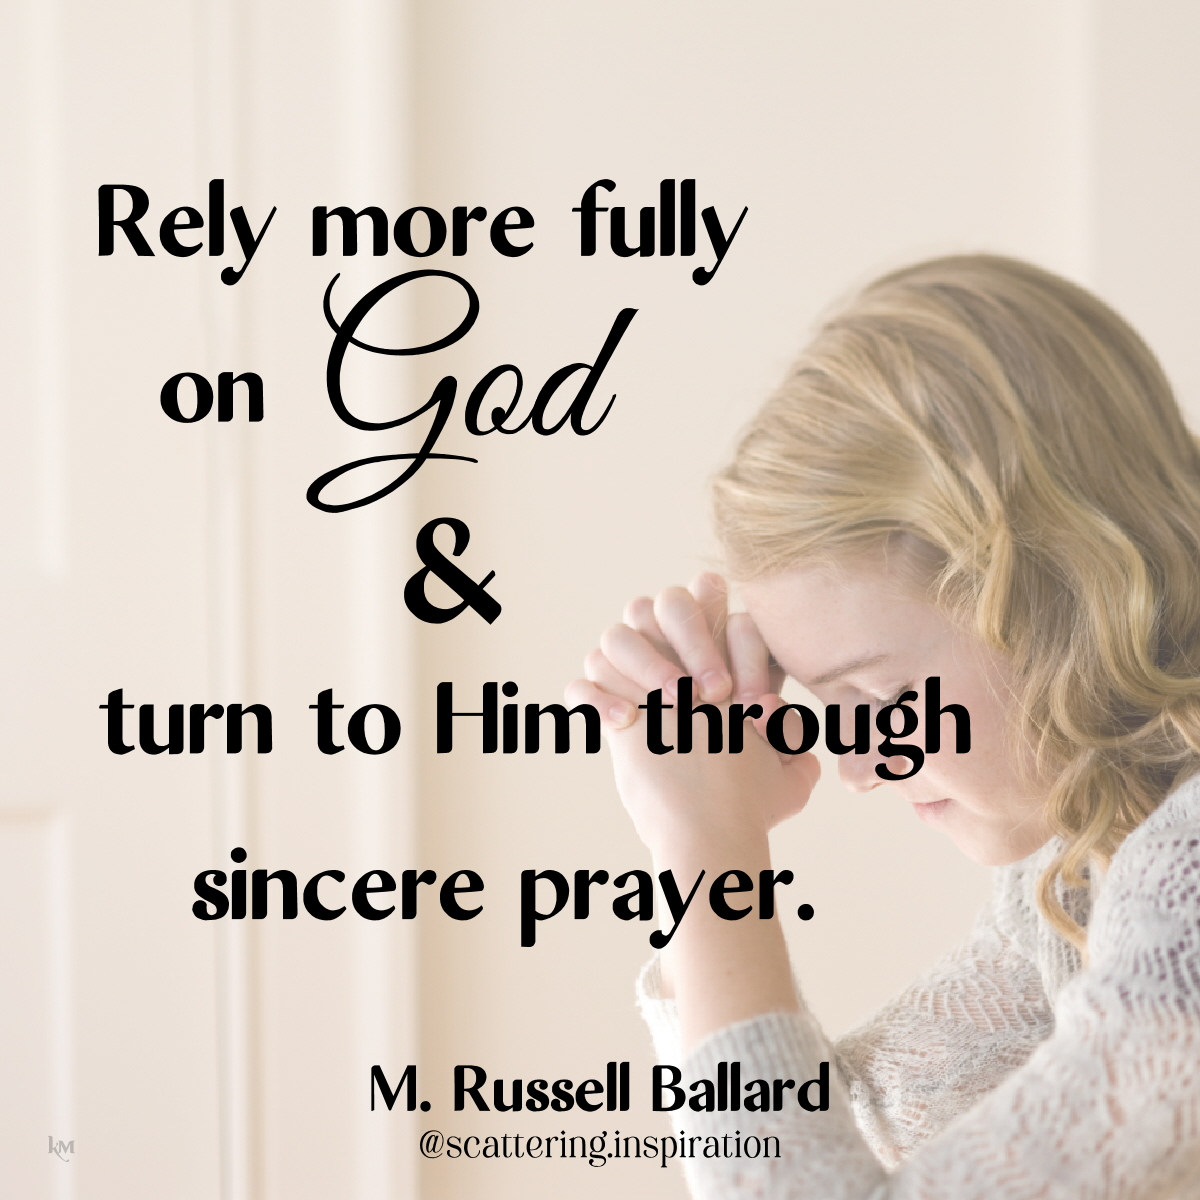 rely more fully on God